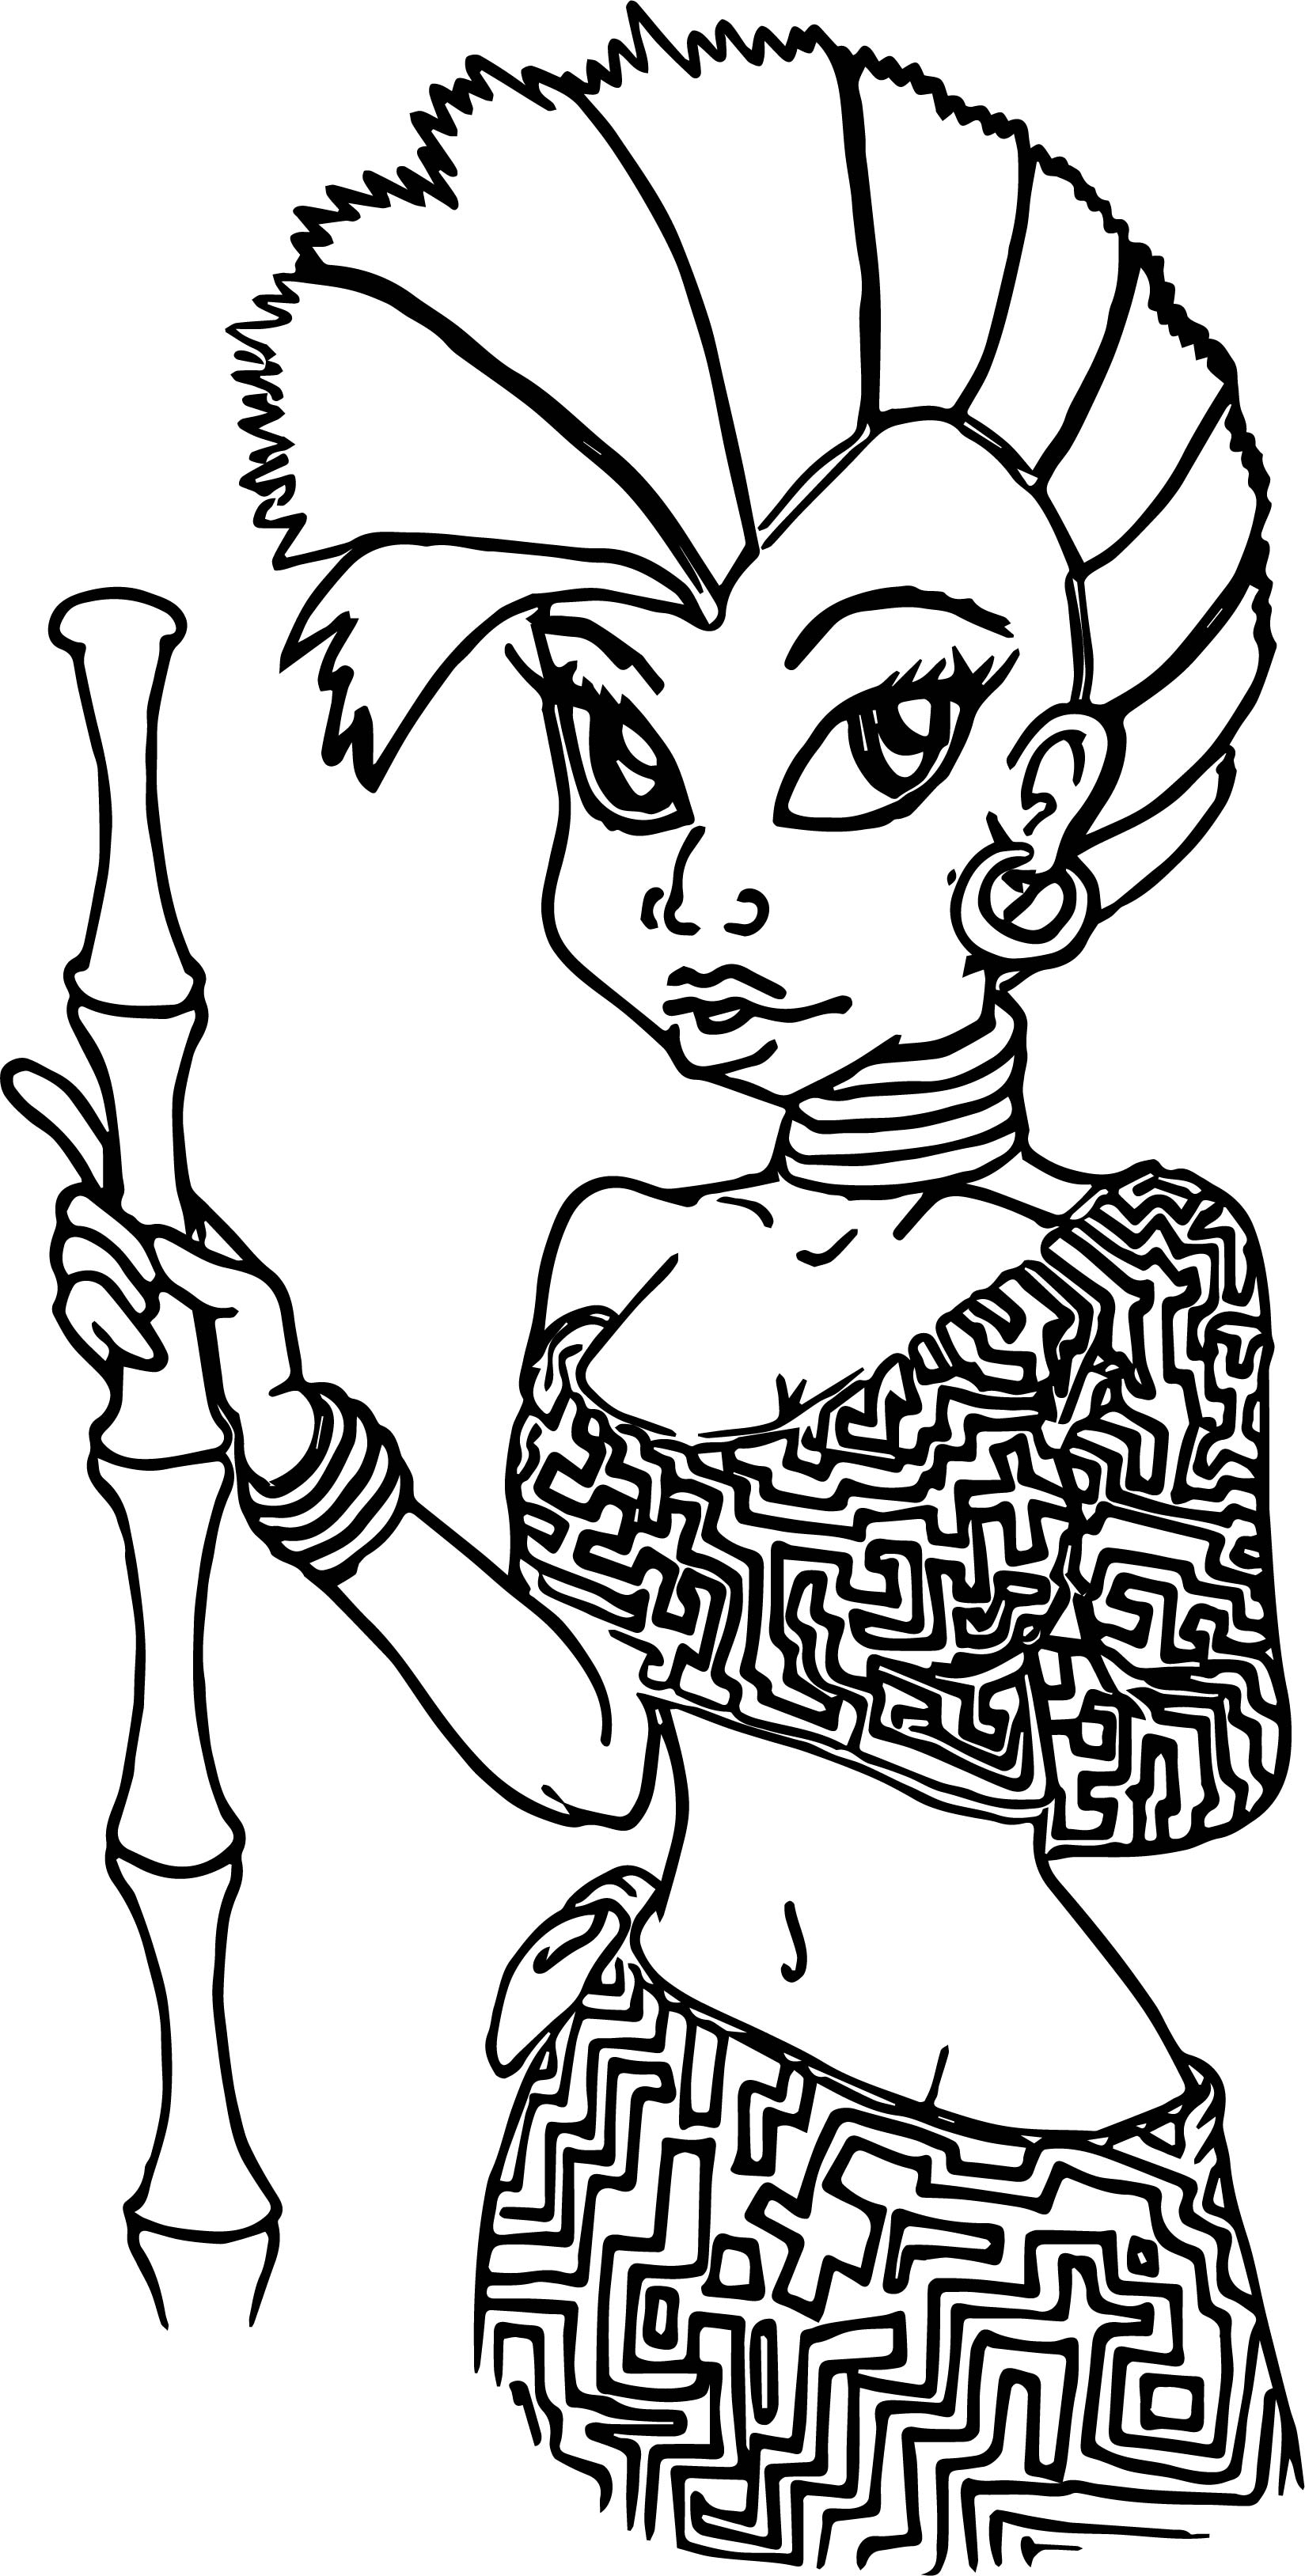 Human Zecora Coloring Page